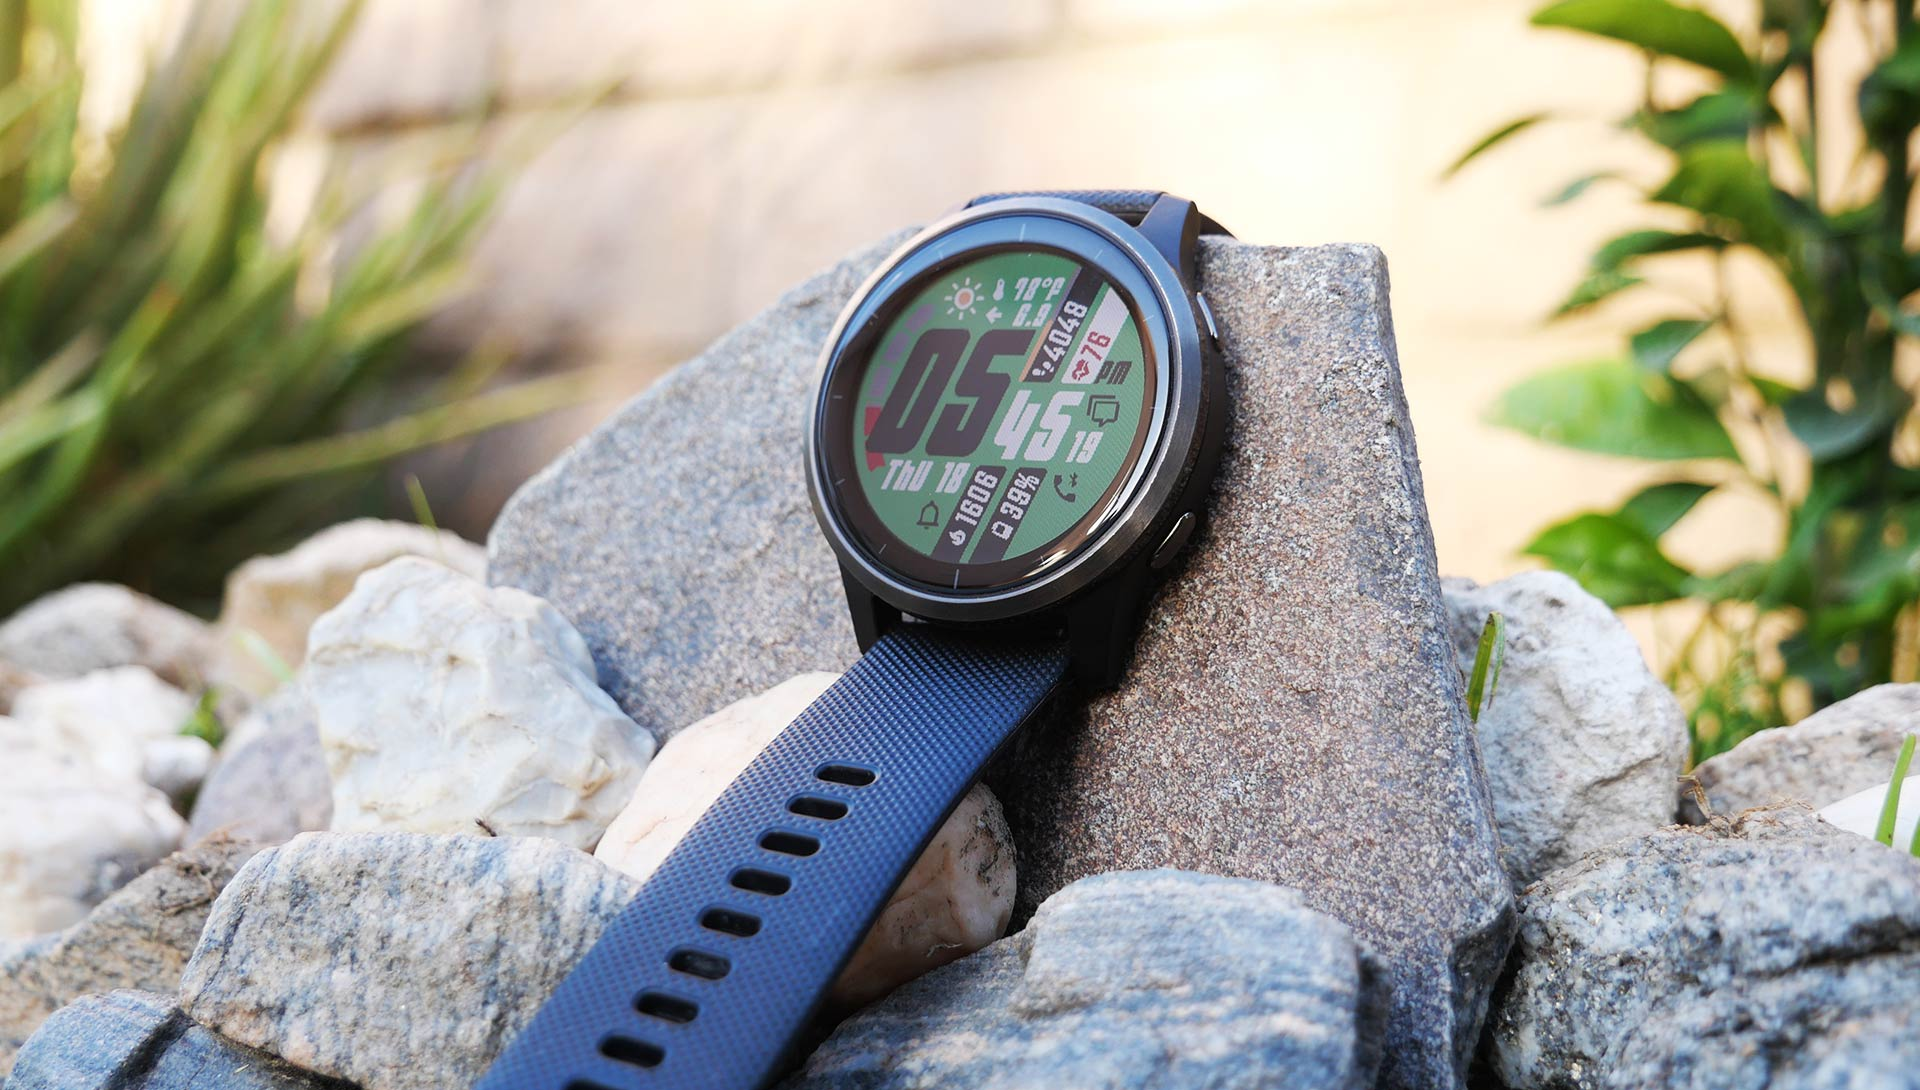 You are currently viewing Garmin Venu vs VivoActive 4 | Battle Of The Touchscreens